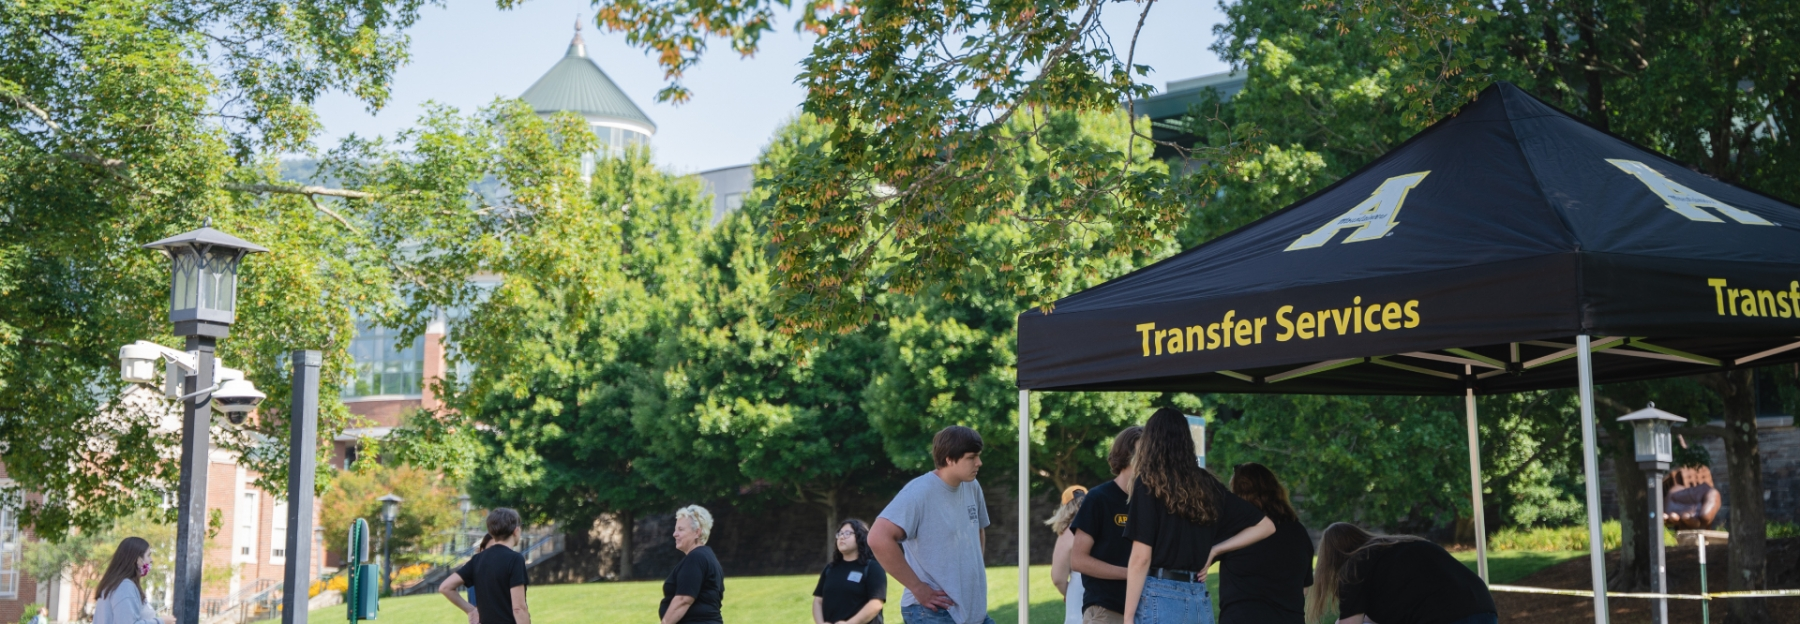 Transfer Services on Sanford Mall